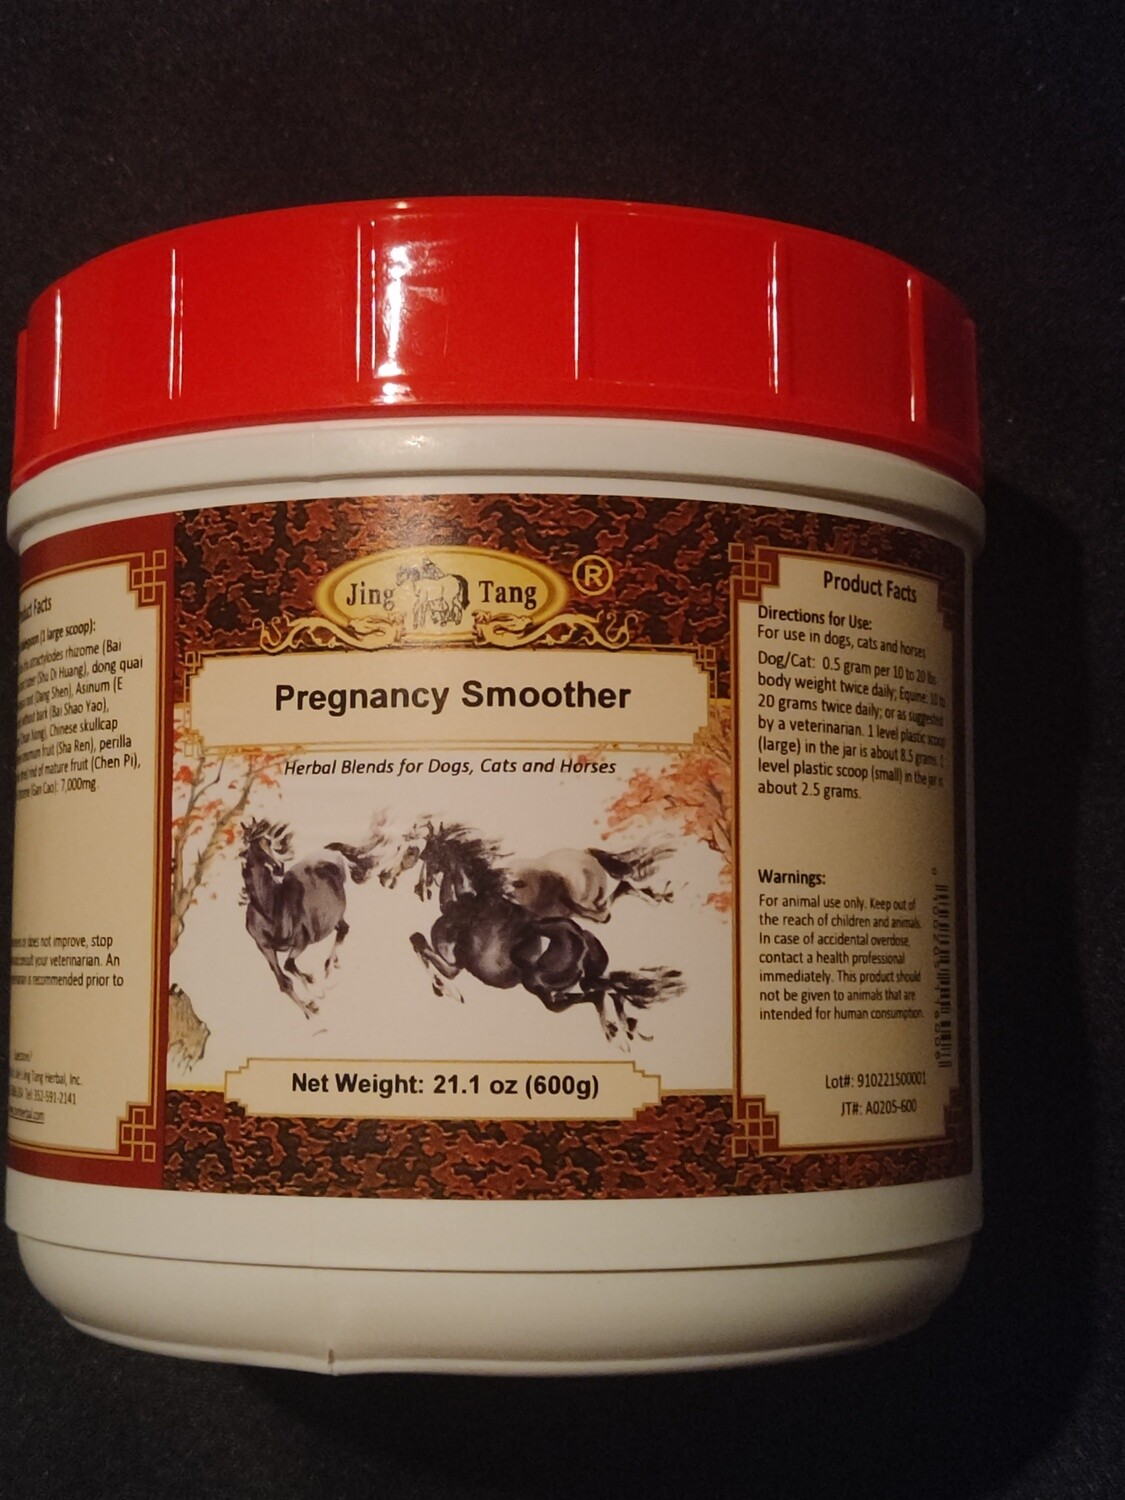 Pregnancy Smoother